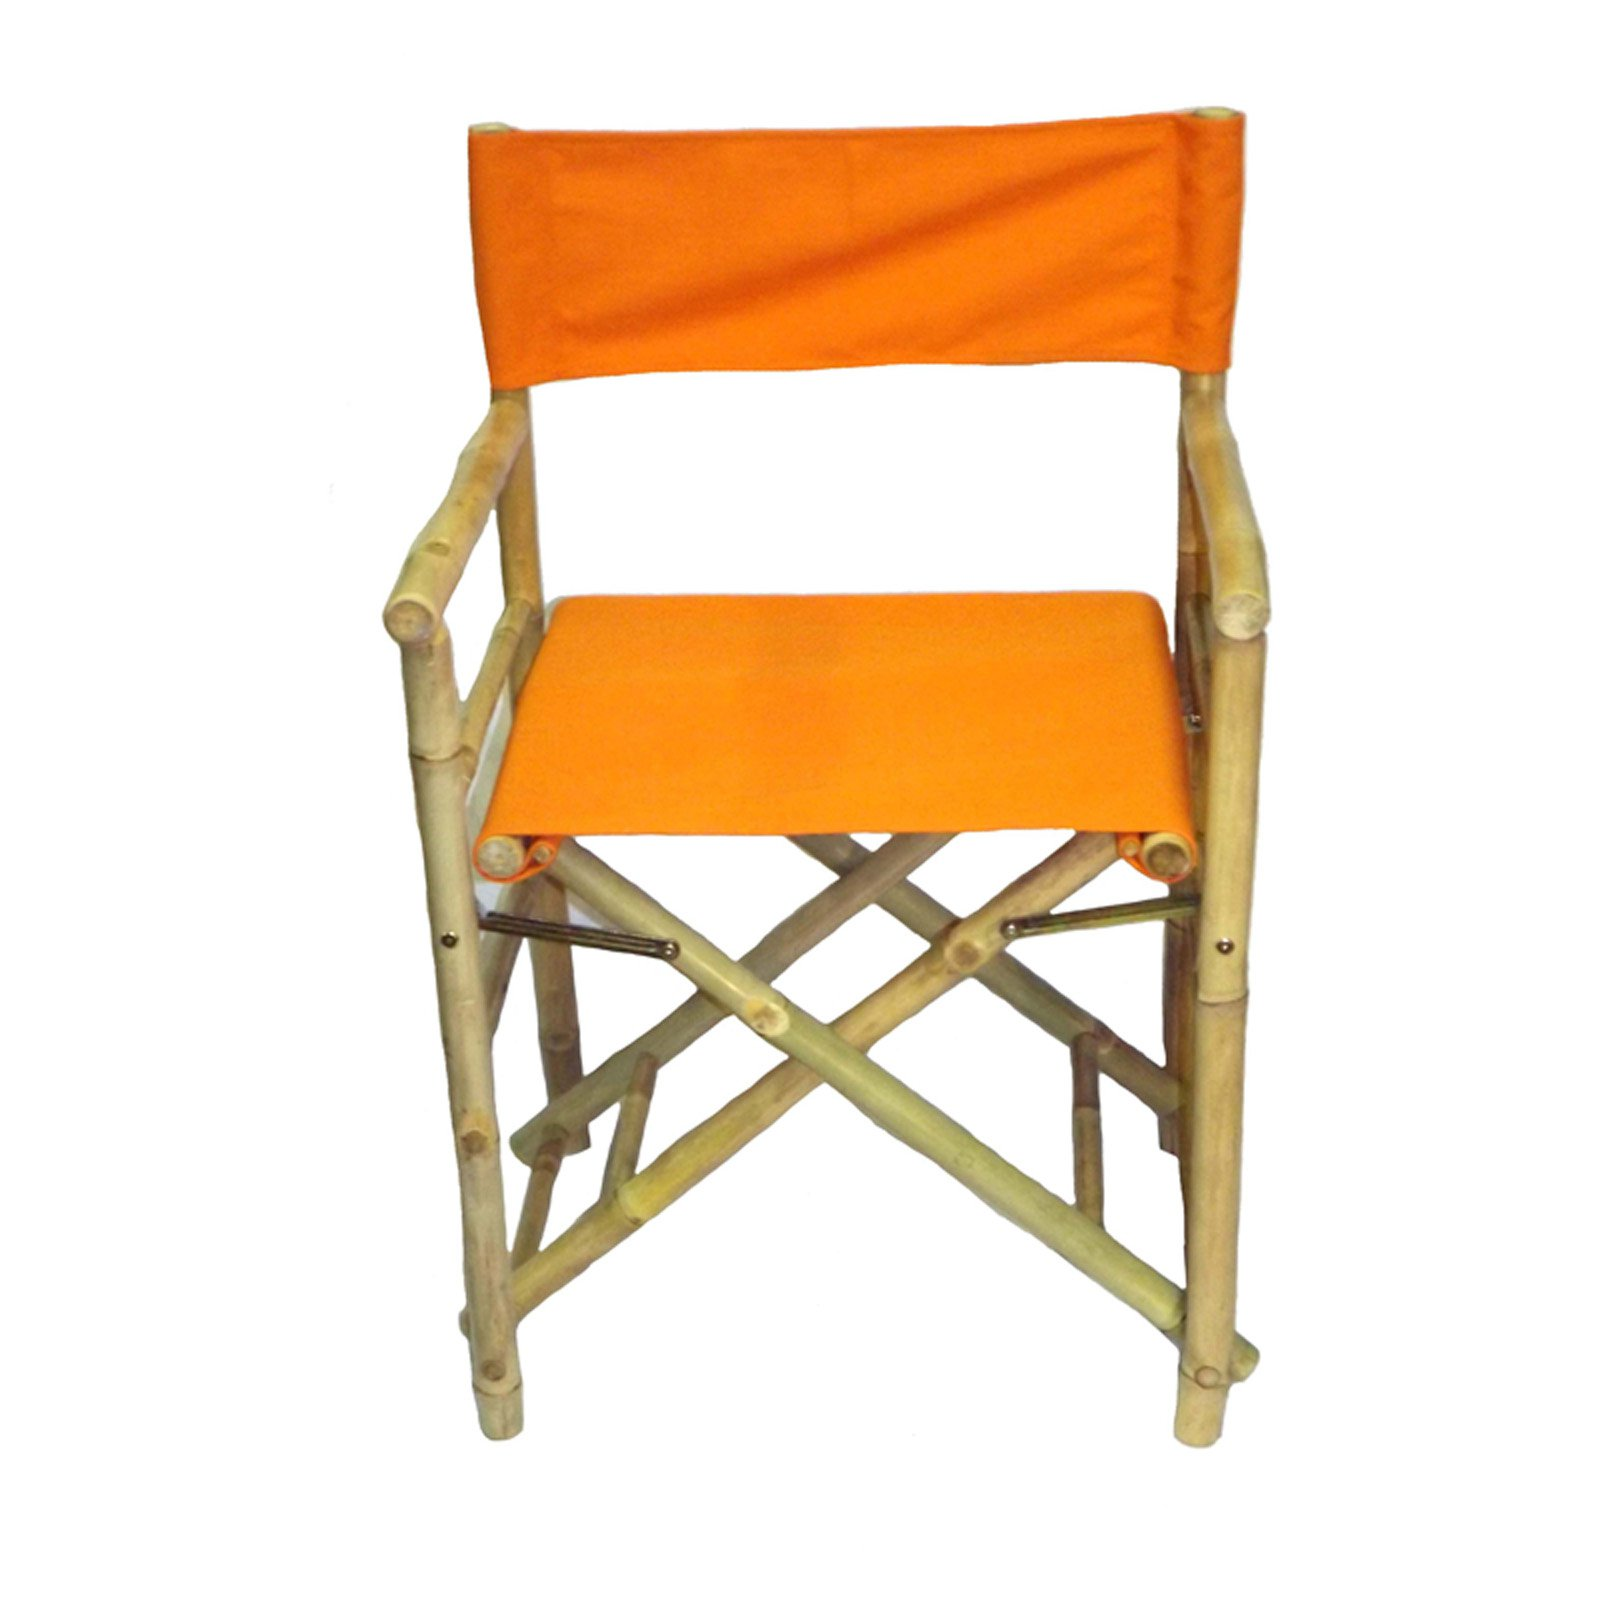 Outdoor Bamboo54 Folding Bamboo Low Directors Chair With Canvas Cover Set Of 2 Orange